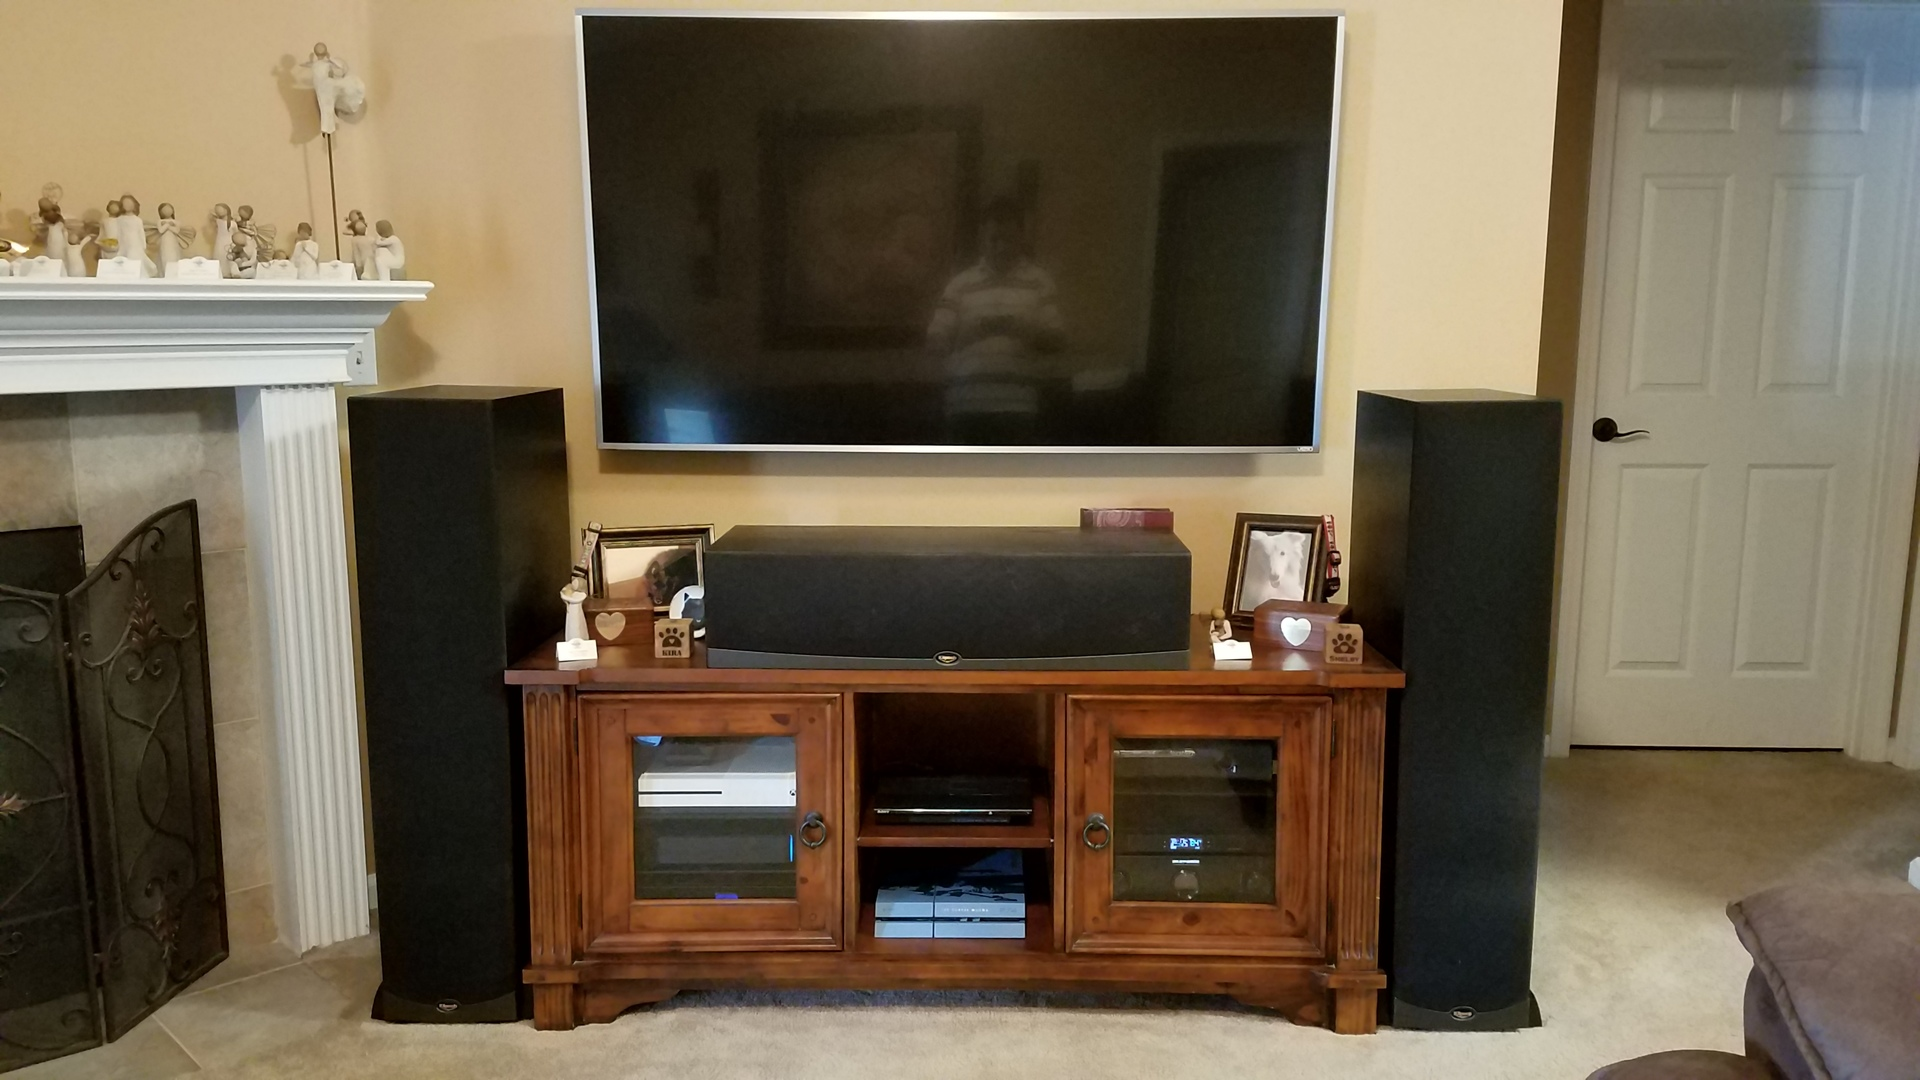 Steve's Home Theater Gallery - HT setup (54 photos)